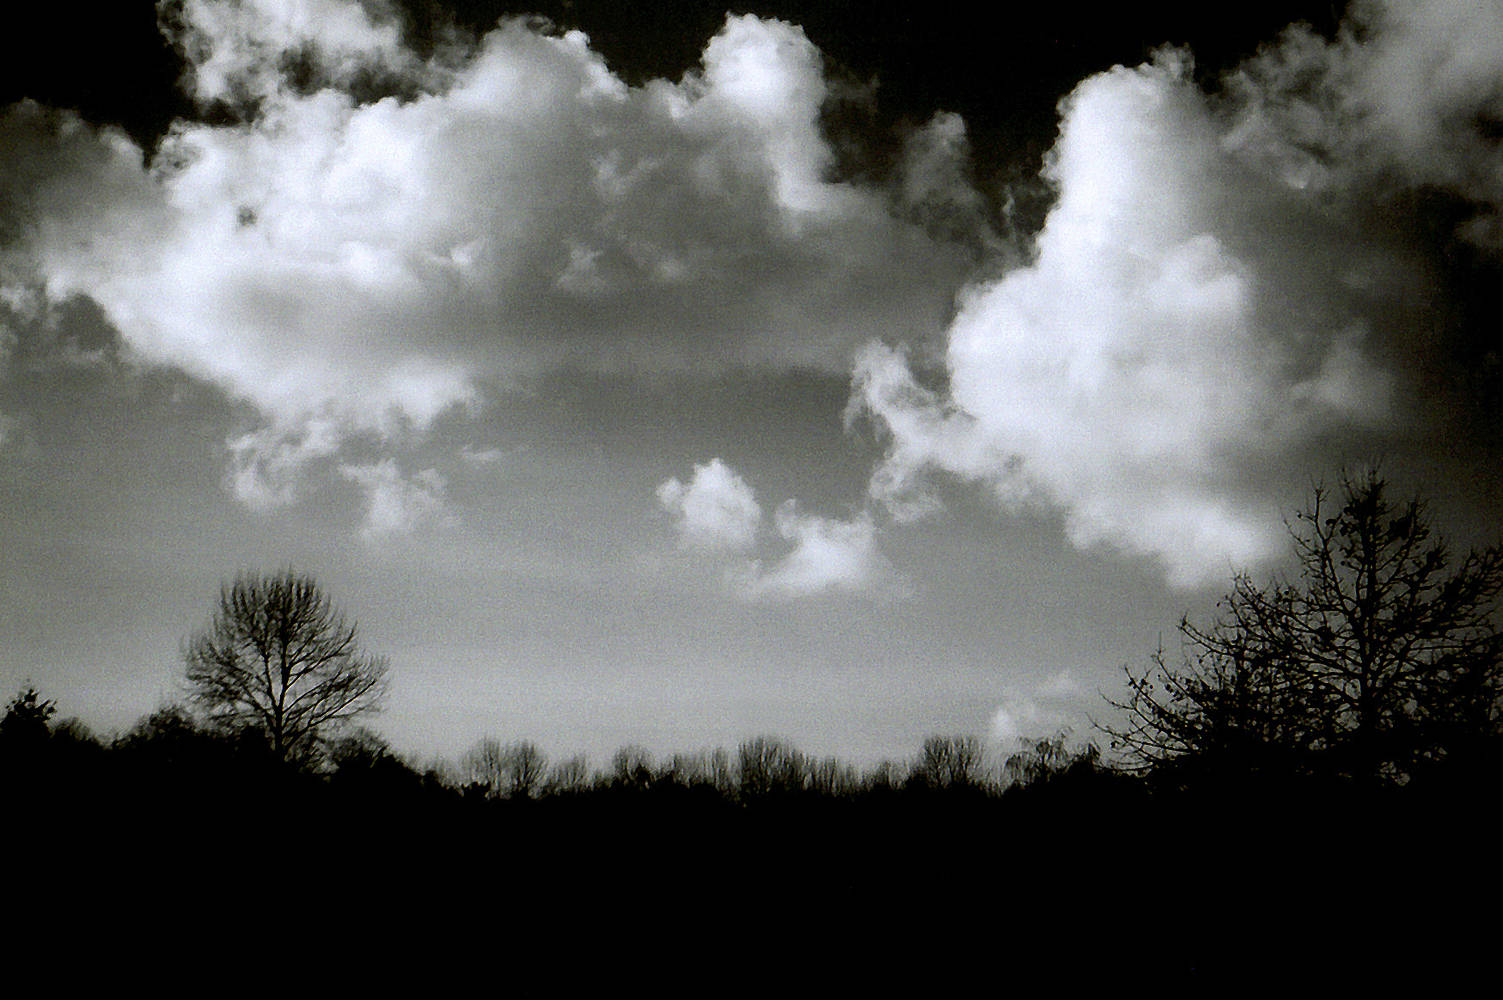 Clouds & trees by Jim Friesen